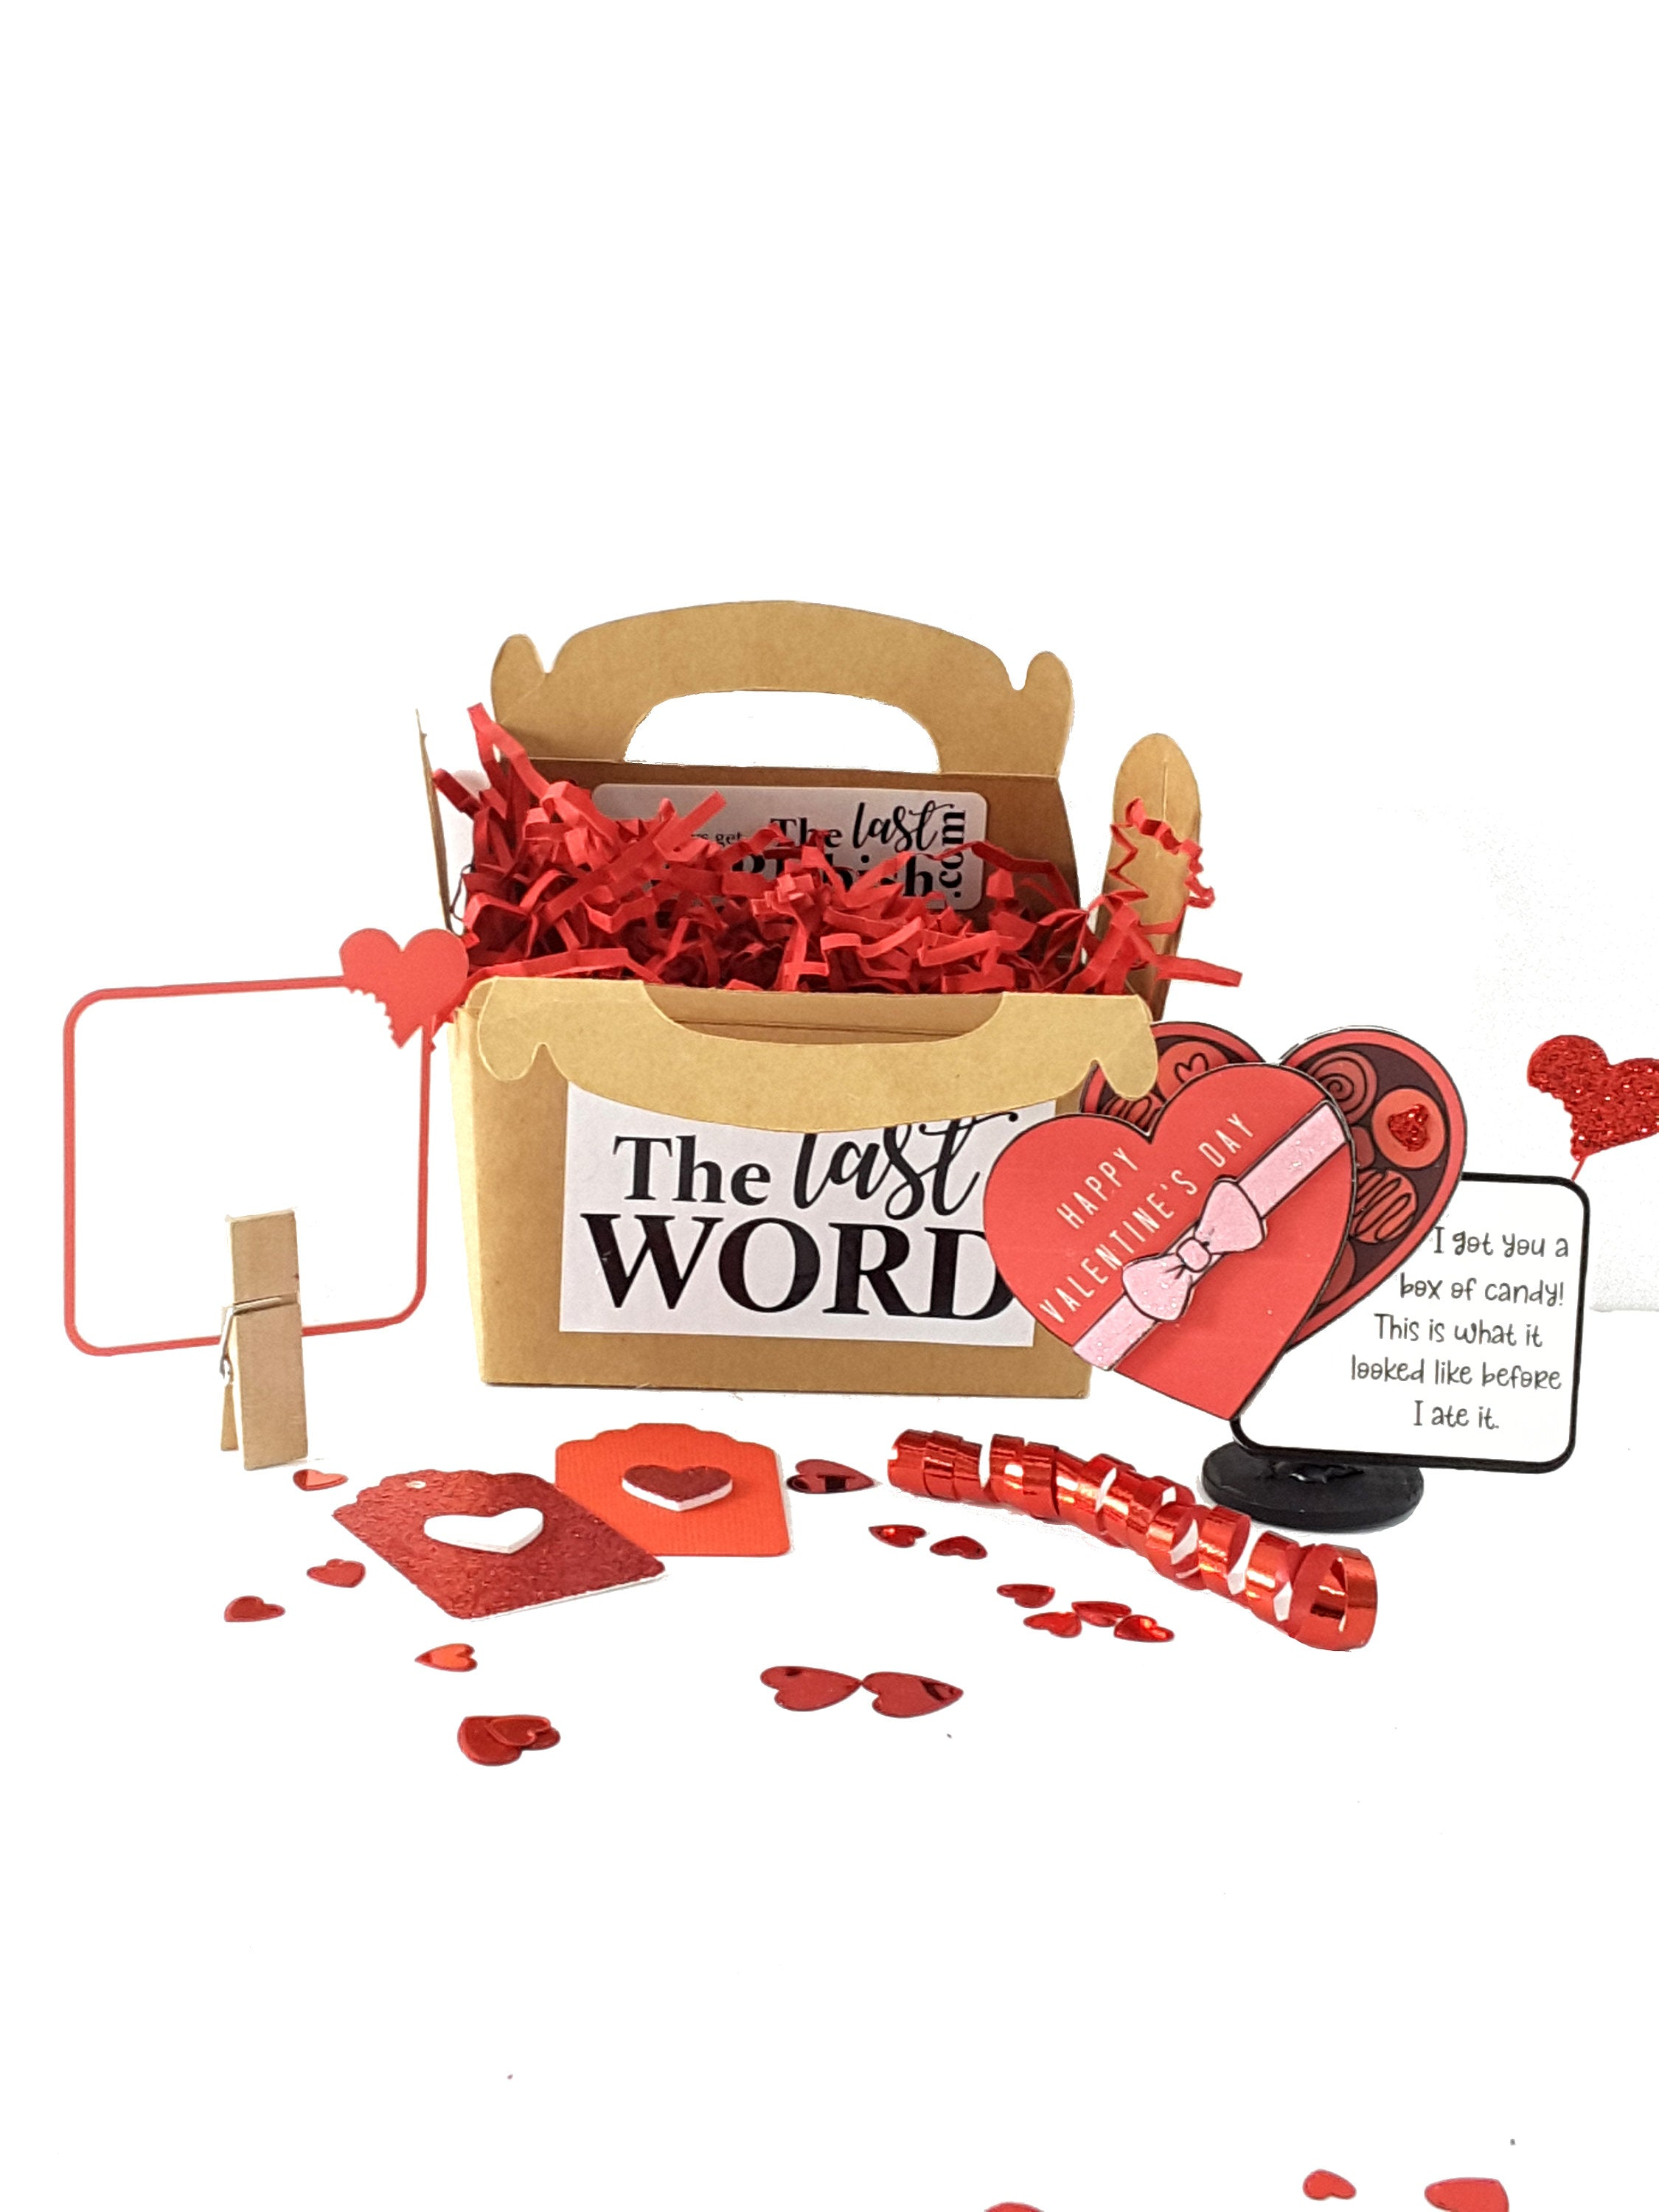 Funny Valentine's Day Gift, Unique Stand Up Box of Candy Valentine's Day Card - TheLastWordBish.com